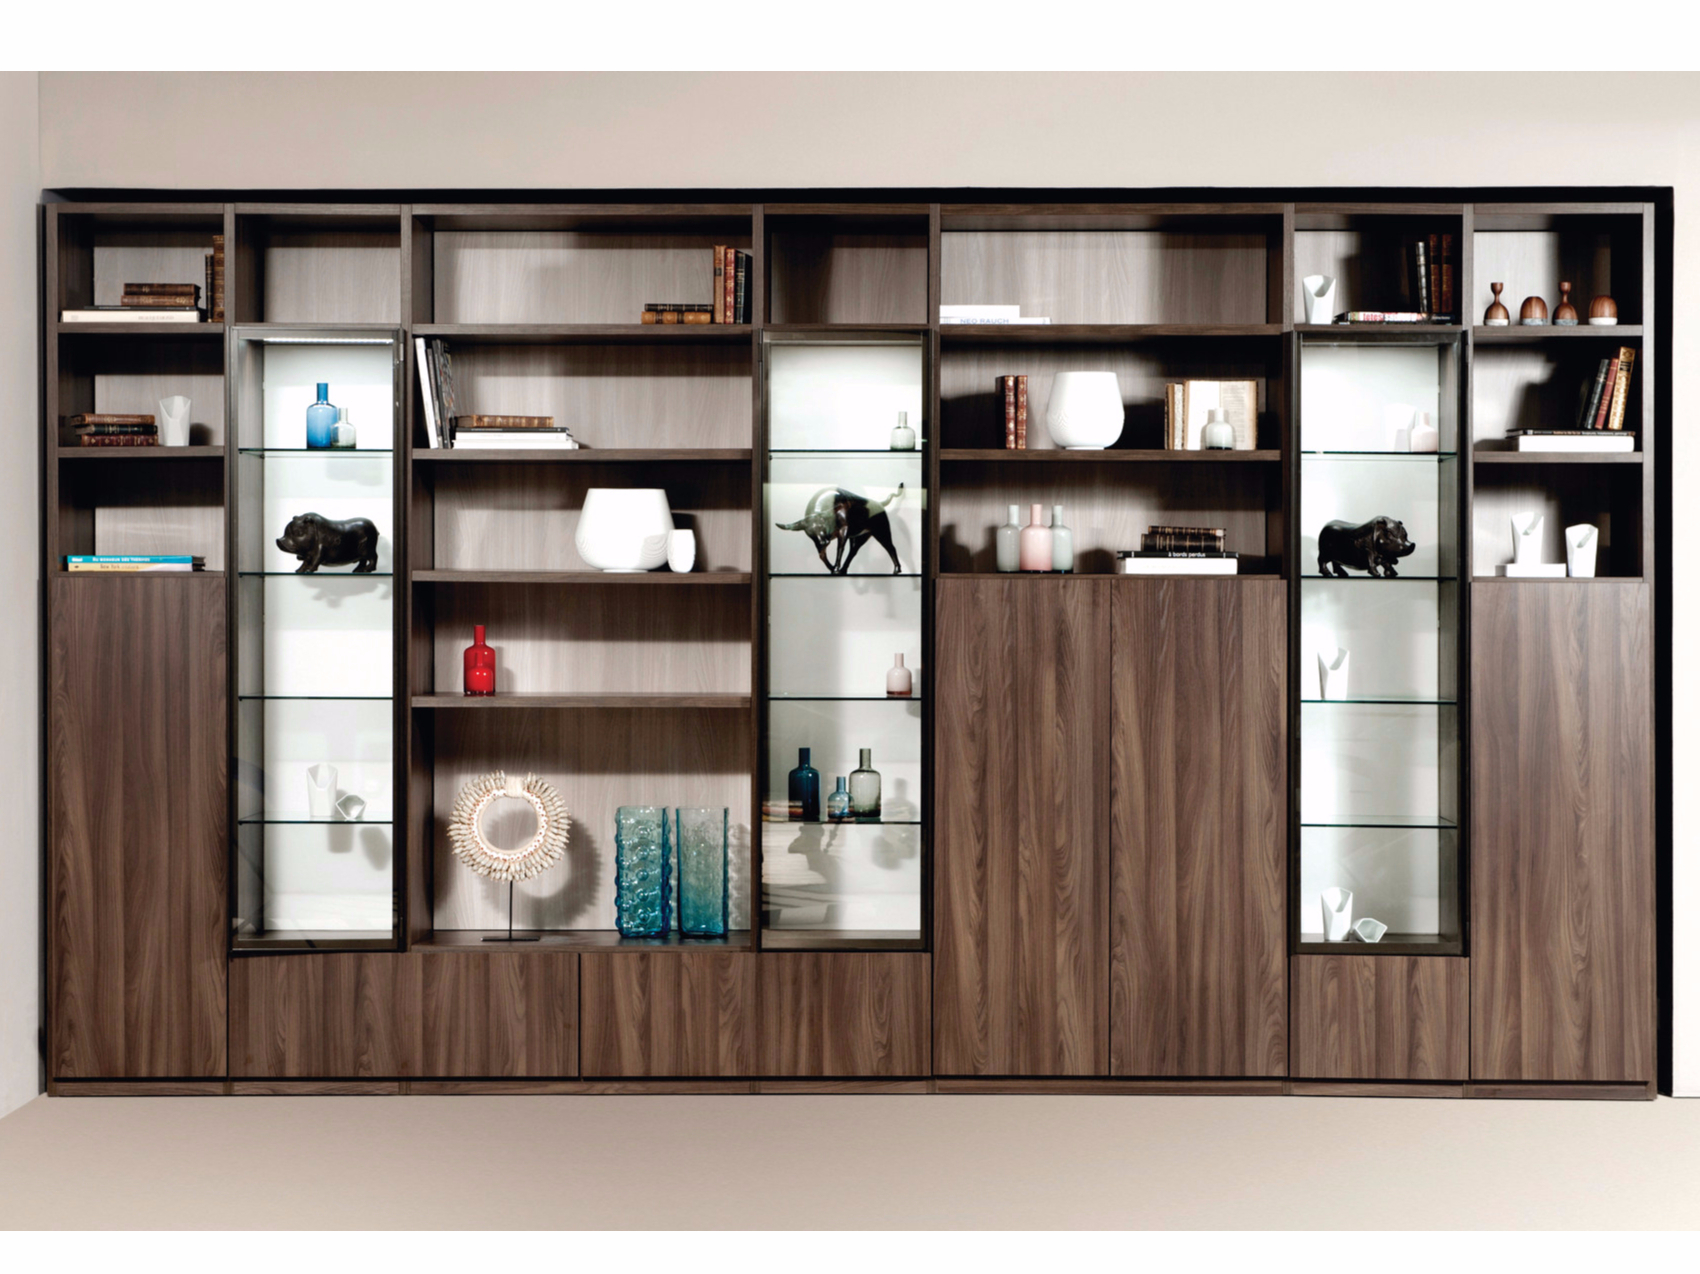 Biblioth que composable intralatina 201510 a by roche bobois - Meuble bibliotheque roche bobois ...